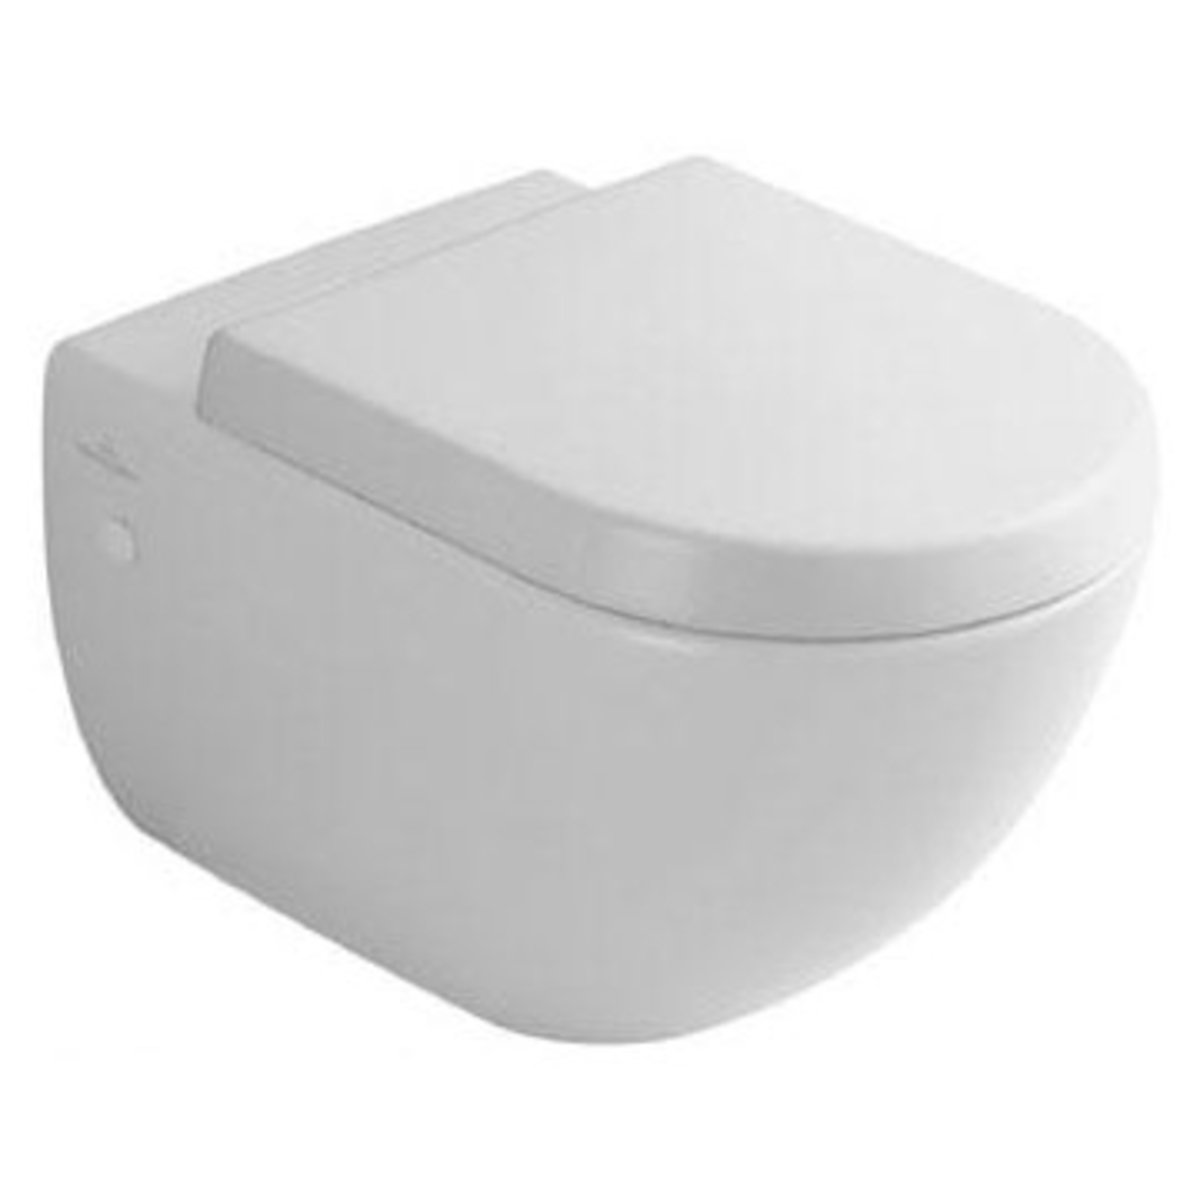 villeroy et boch subway pack wc encastrable avec wc suspendu fond creux blanc abattant. Black Bedroom Furniture Sets. Home Design Ideas